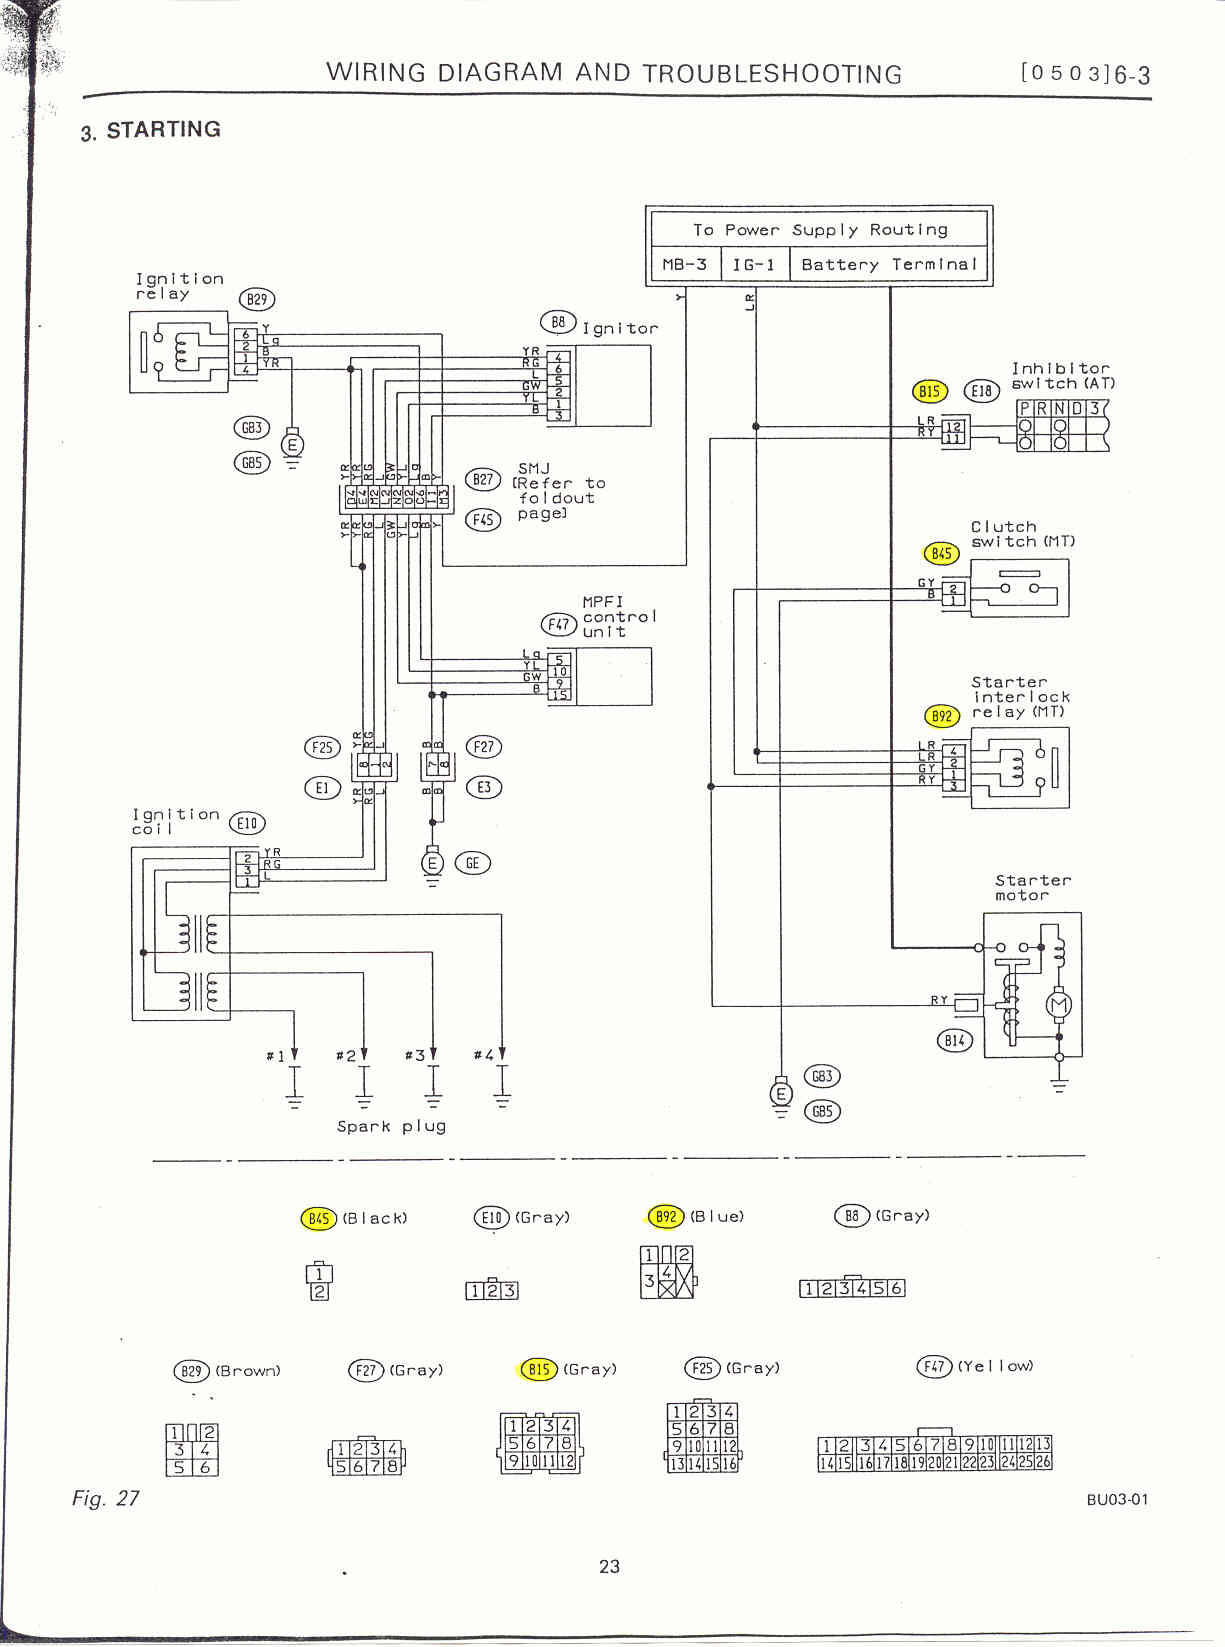 24D09 87 Dodge W150 Wiring Diagram | Wiring Resources 1984 dodge ram fuse box diagram Wiring Resources